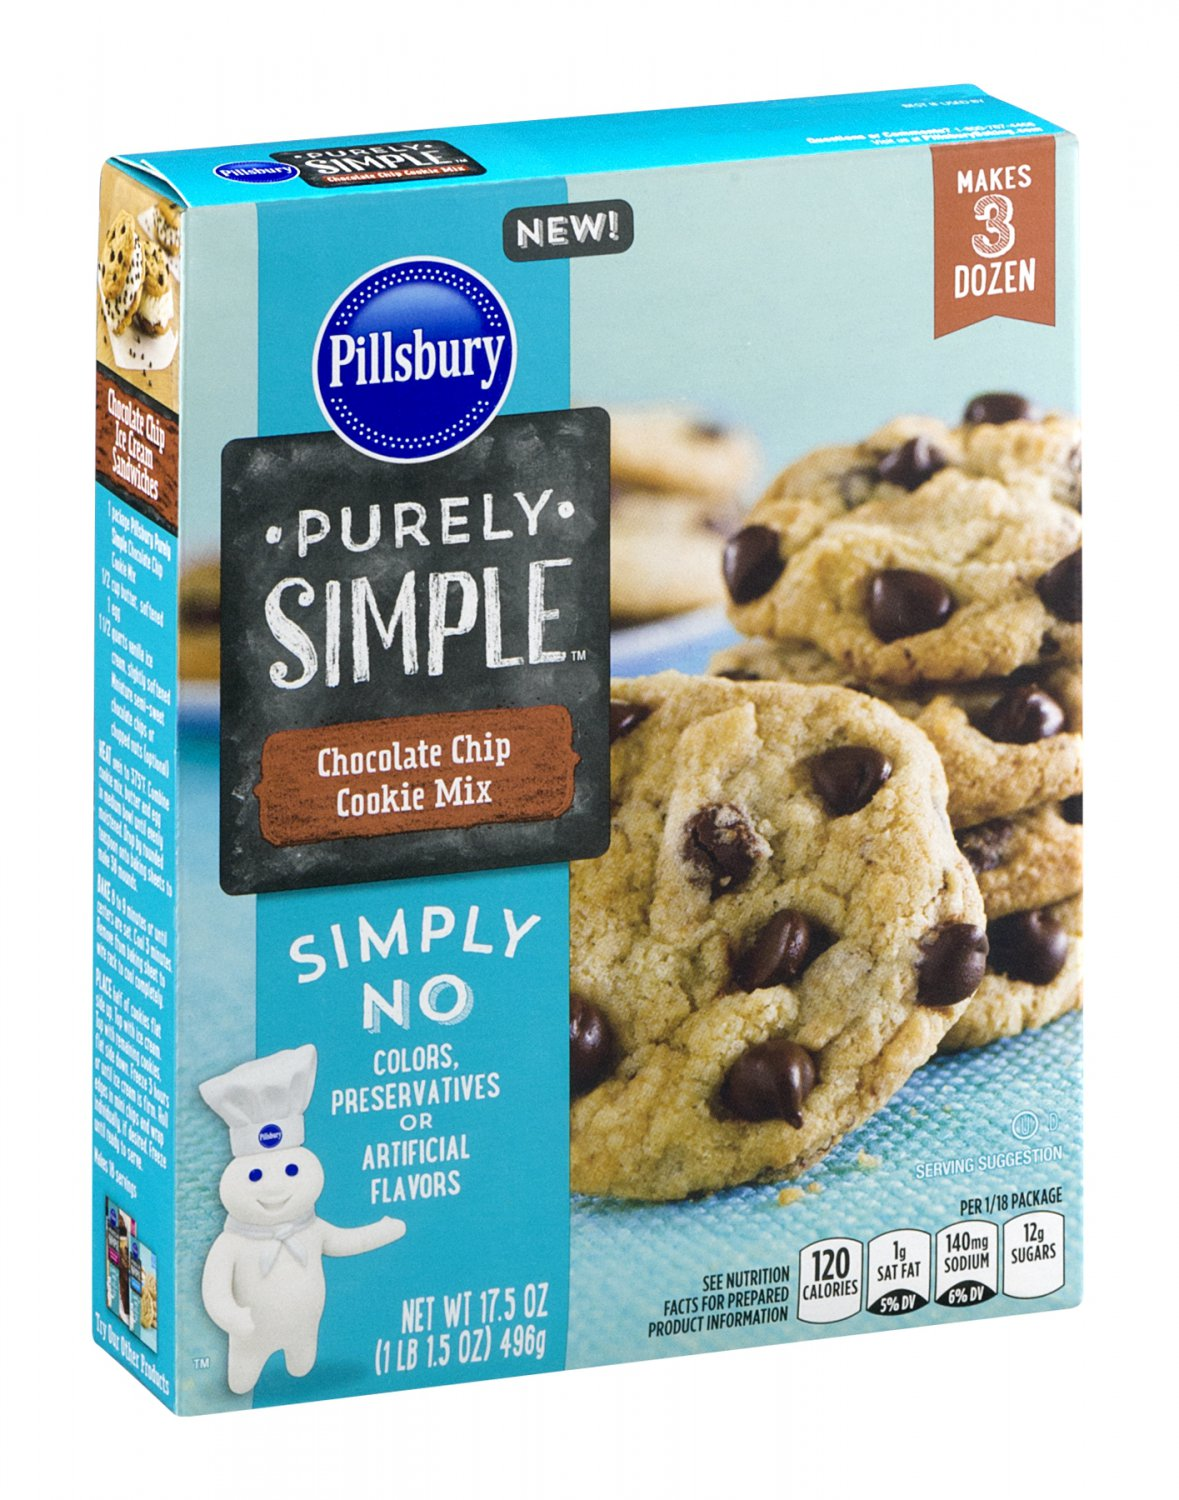 Pillsbury, Purely Simple Mixes, 17.5oz Box (Chocolate Chip Cookie Mix)